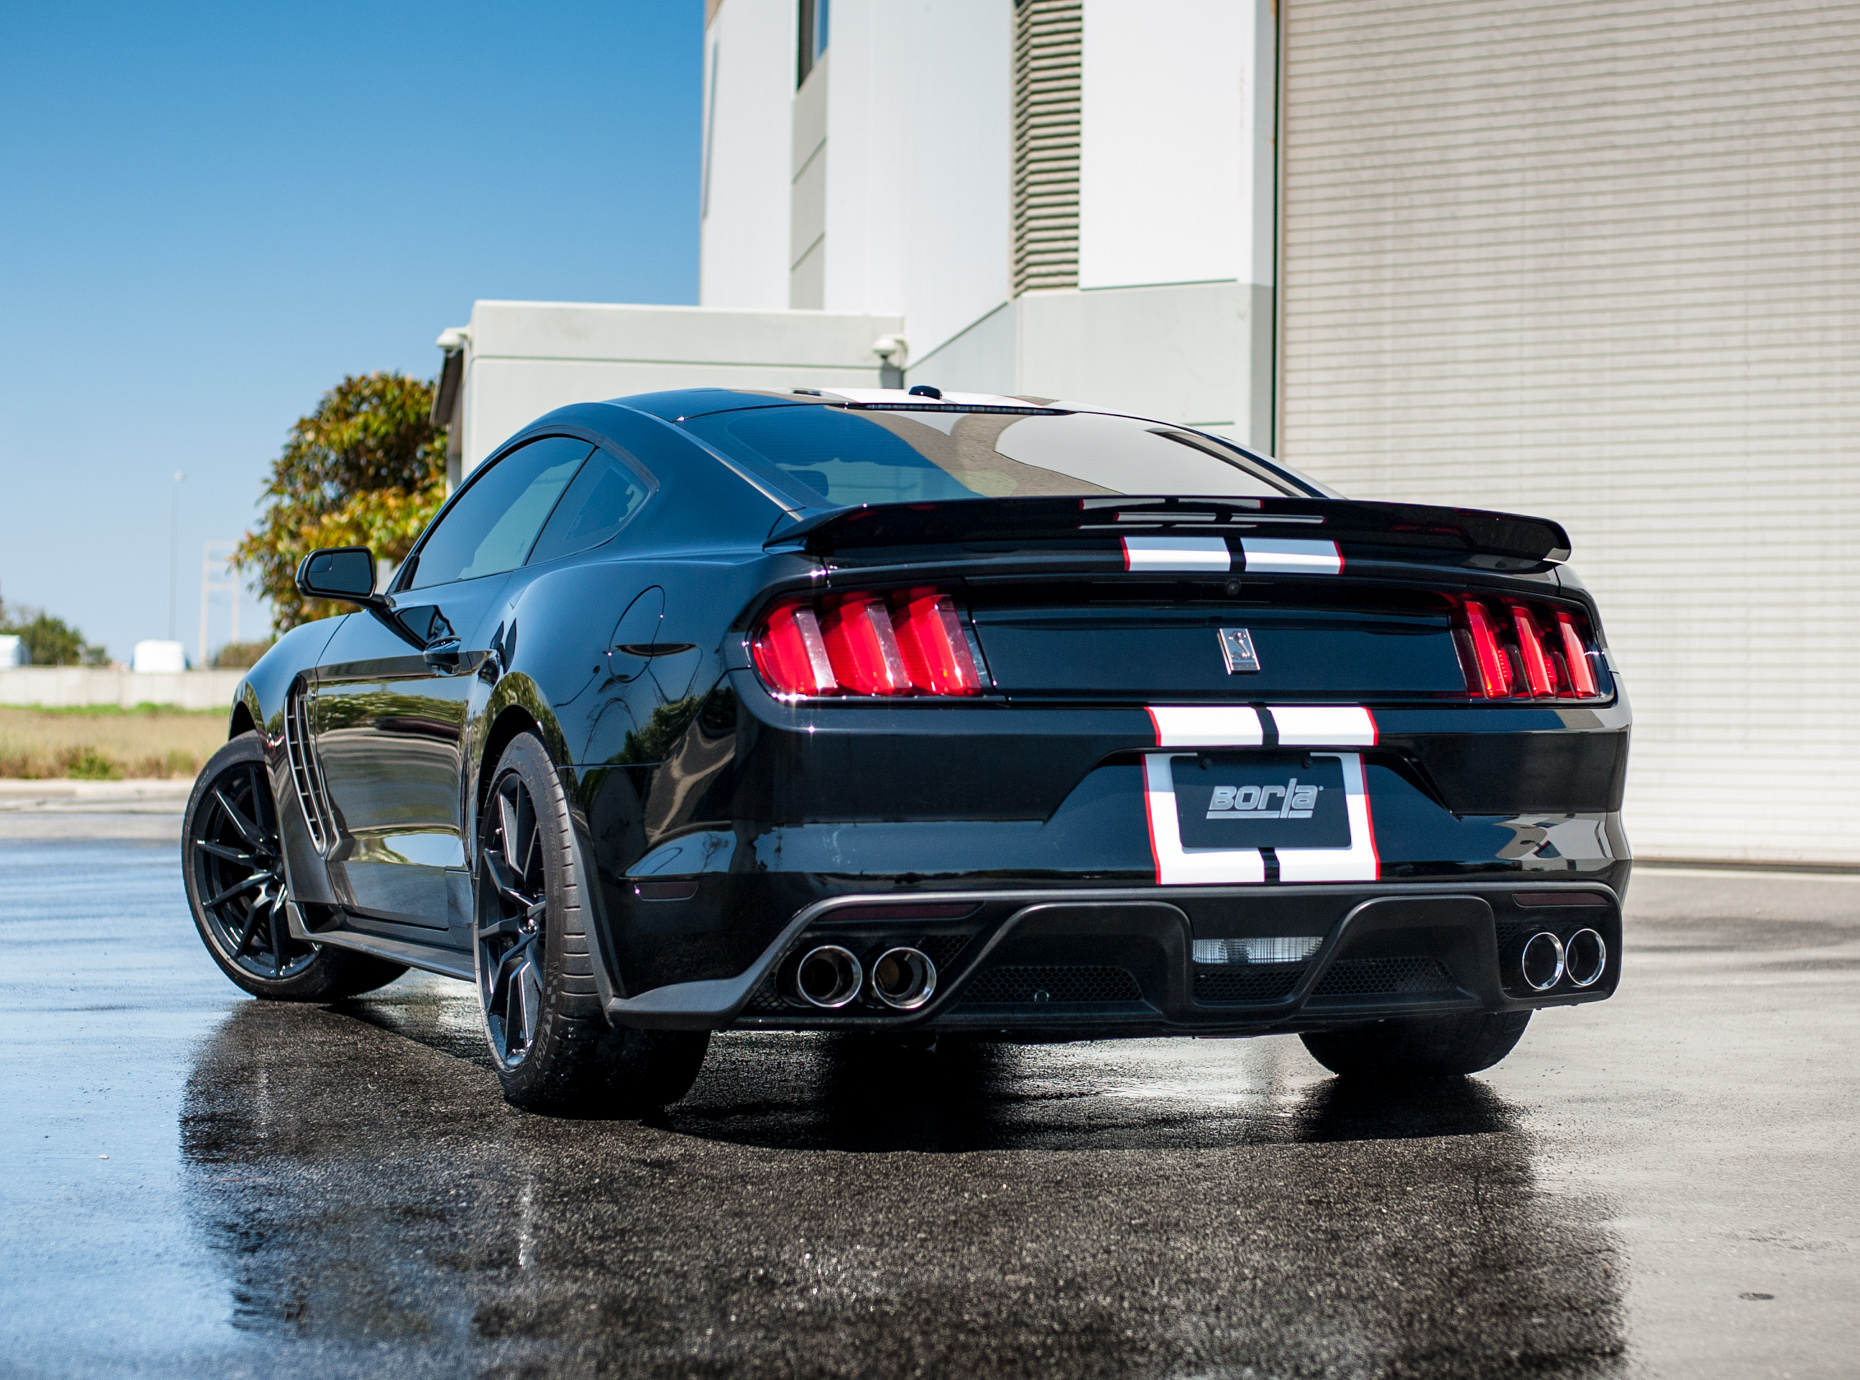 borla cat back exhaust for the mustang